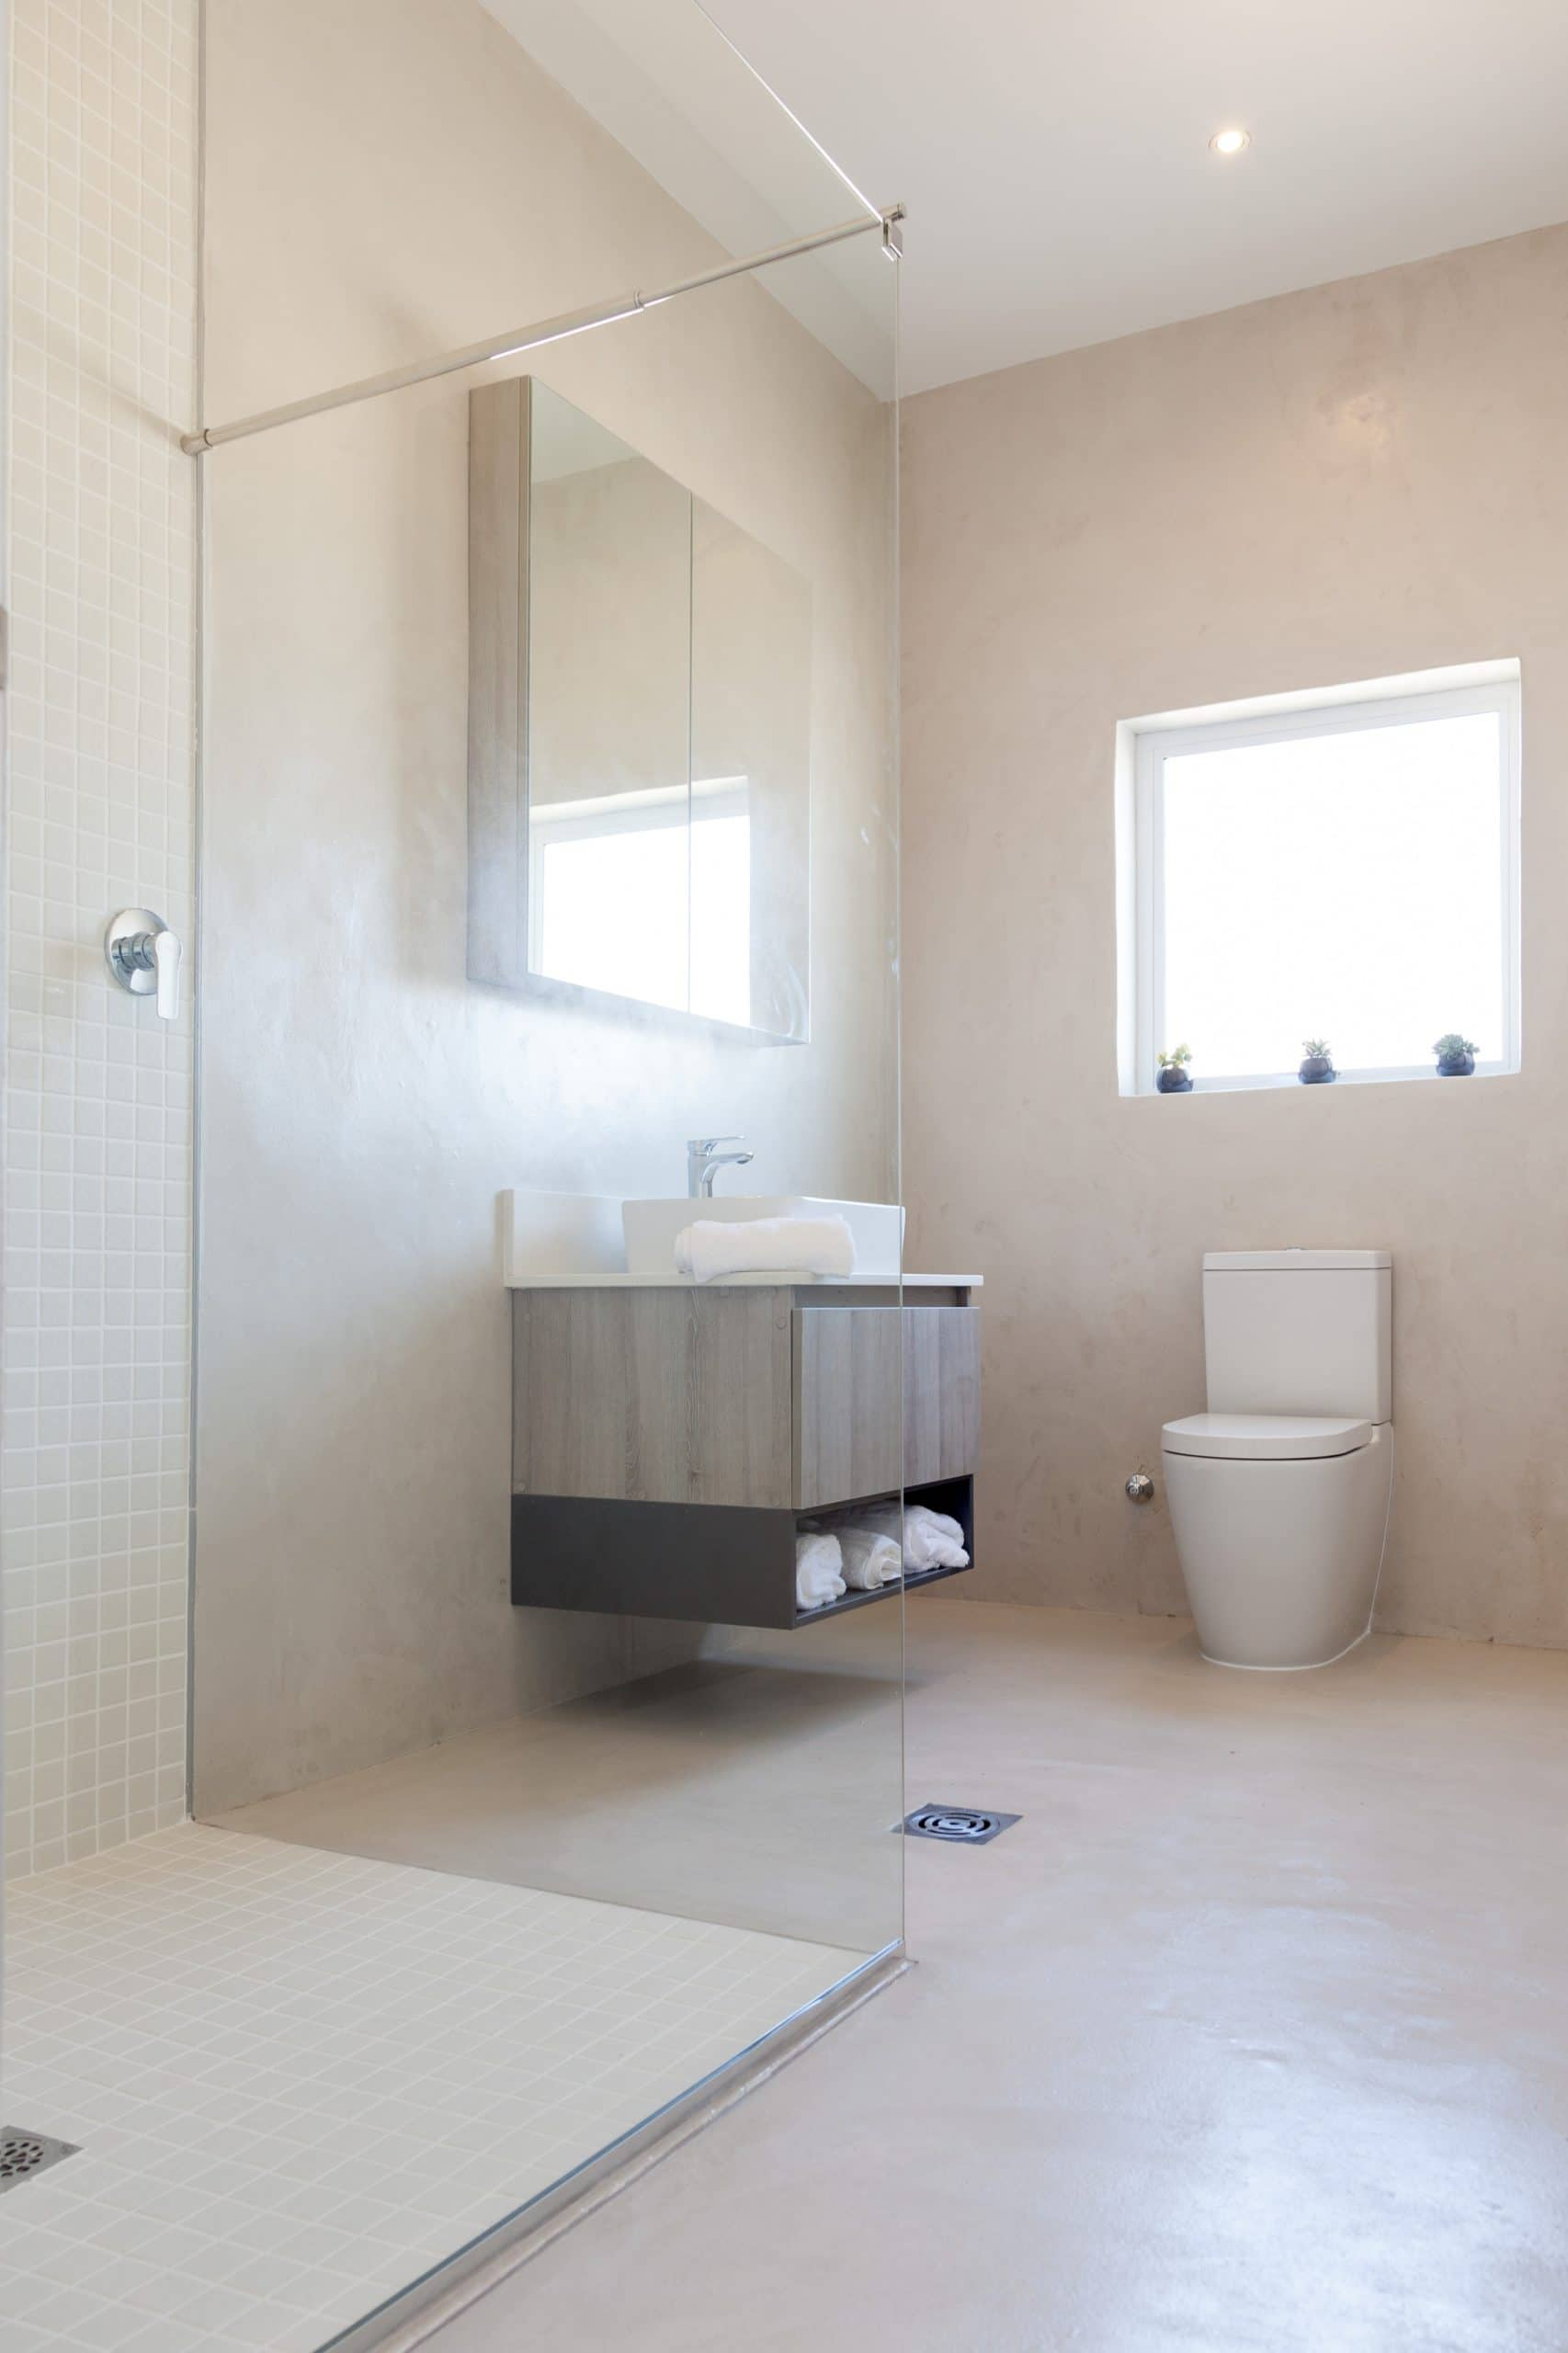 screed bathroom floors and walls with open showers